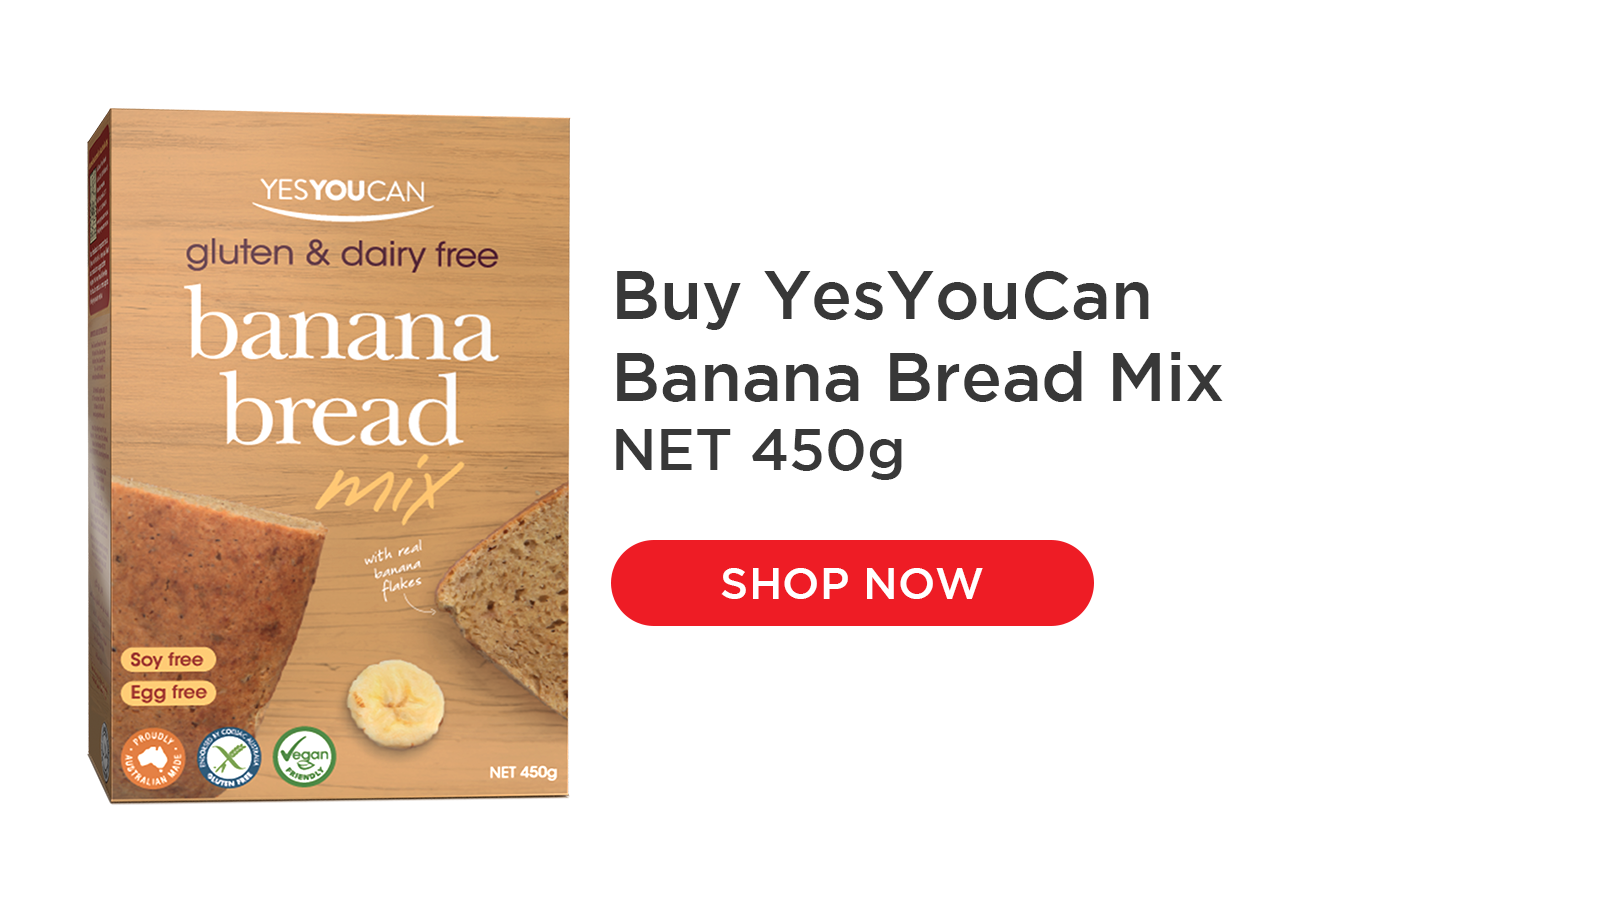 YesYouCan Banana Bread Mix includes real banana flakes for a delicious natural taste. Lightly spiced with cinnamon and nutmeg for a delicious café experience at home. Can be enjoyed fresh or toasted and served with a topping of your choice. Quick and easy to make, its perfect for busy families and great for morning tea or school lunchboxes.